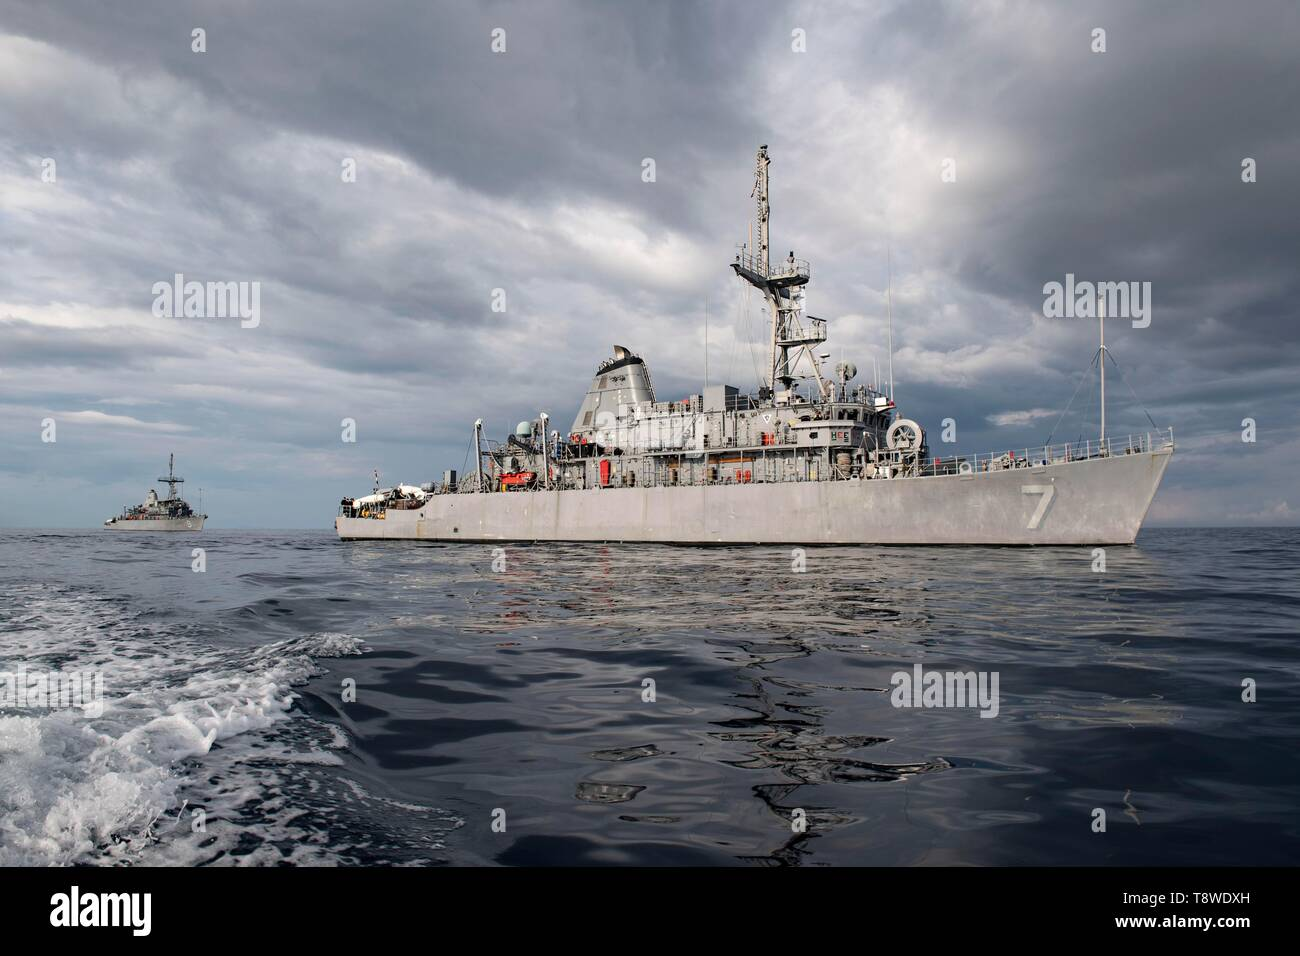 190508-N-SB587-1098 SOUTH CHINA SEA (May 8, 2019) The Avenger-class mine countermeasures ship USS Pioneer (MCM 9) and her sister ship USS Patriot (MCM 7) underway. Both Pioneer and Patriot, part of Mine Countermeasures Squadron 7, are operating in the U.S. 7th Fleet area of operations to enhance interoperability with partners and serve as a ready-response platform for contingency operations. (U.S. Navy photo by Mass Communication Specialist 2nd Class Corbin J. Shea) - Stock Image